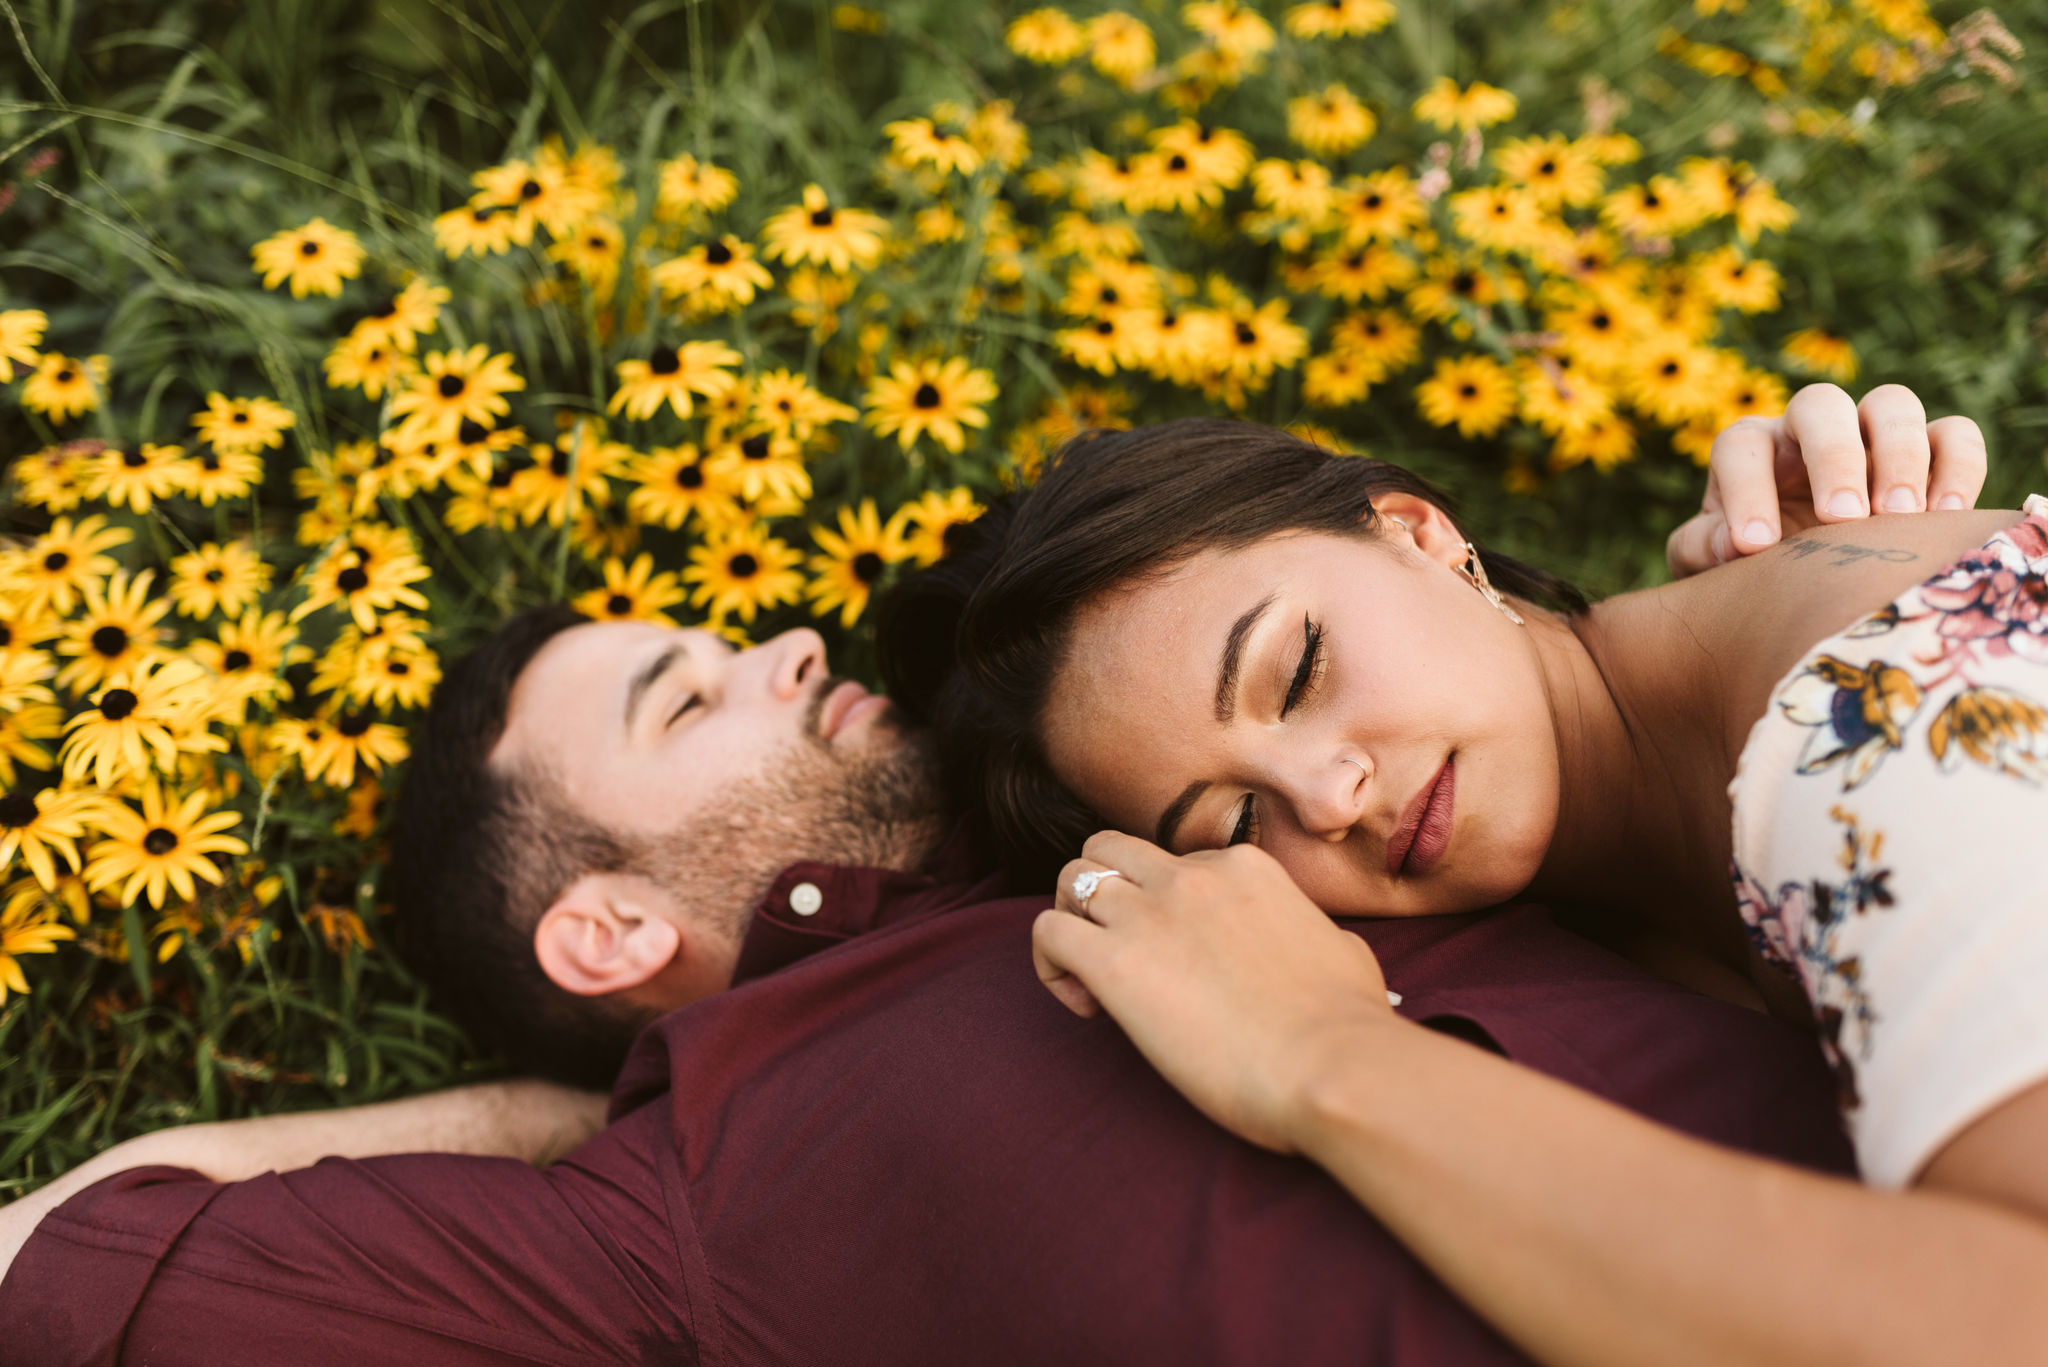 Frederick Maryland, Baltimore Wedding Photographer, Engagement, Bend in the River Farm, Outdoor, Rustic, Nature, Bride and Groom Laying in a Field of Wildflowers Together, Sweet Portrait, Engagement Ring